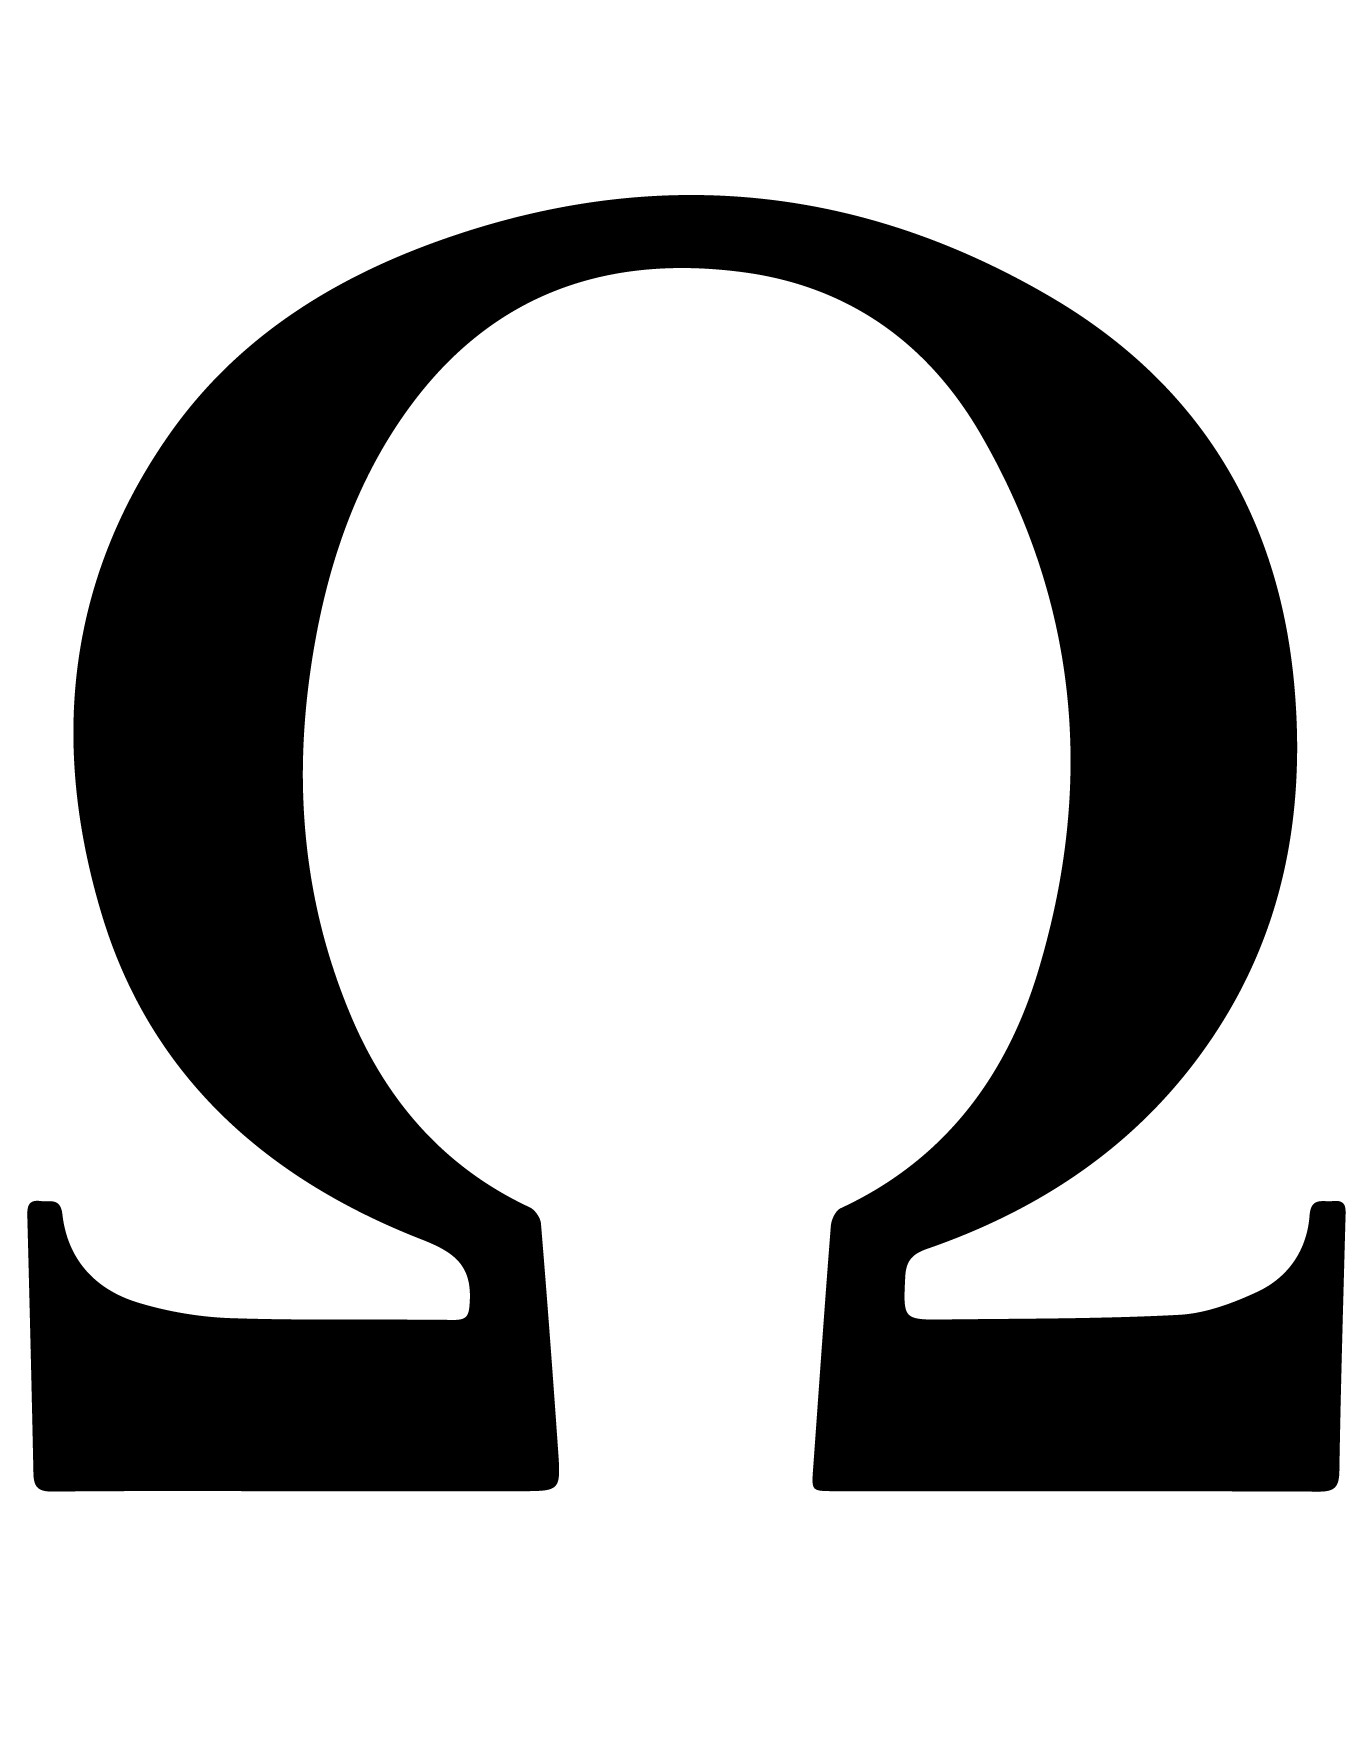 Omega-Symbol-and-Its-Meaning.jpg